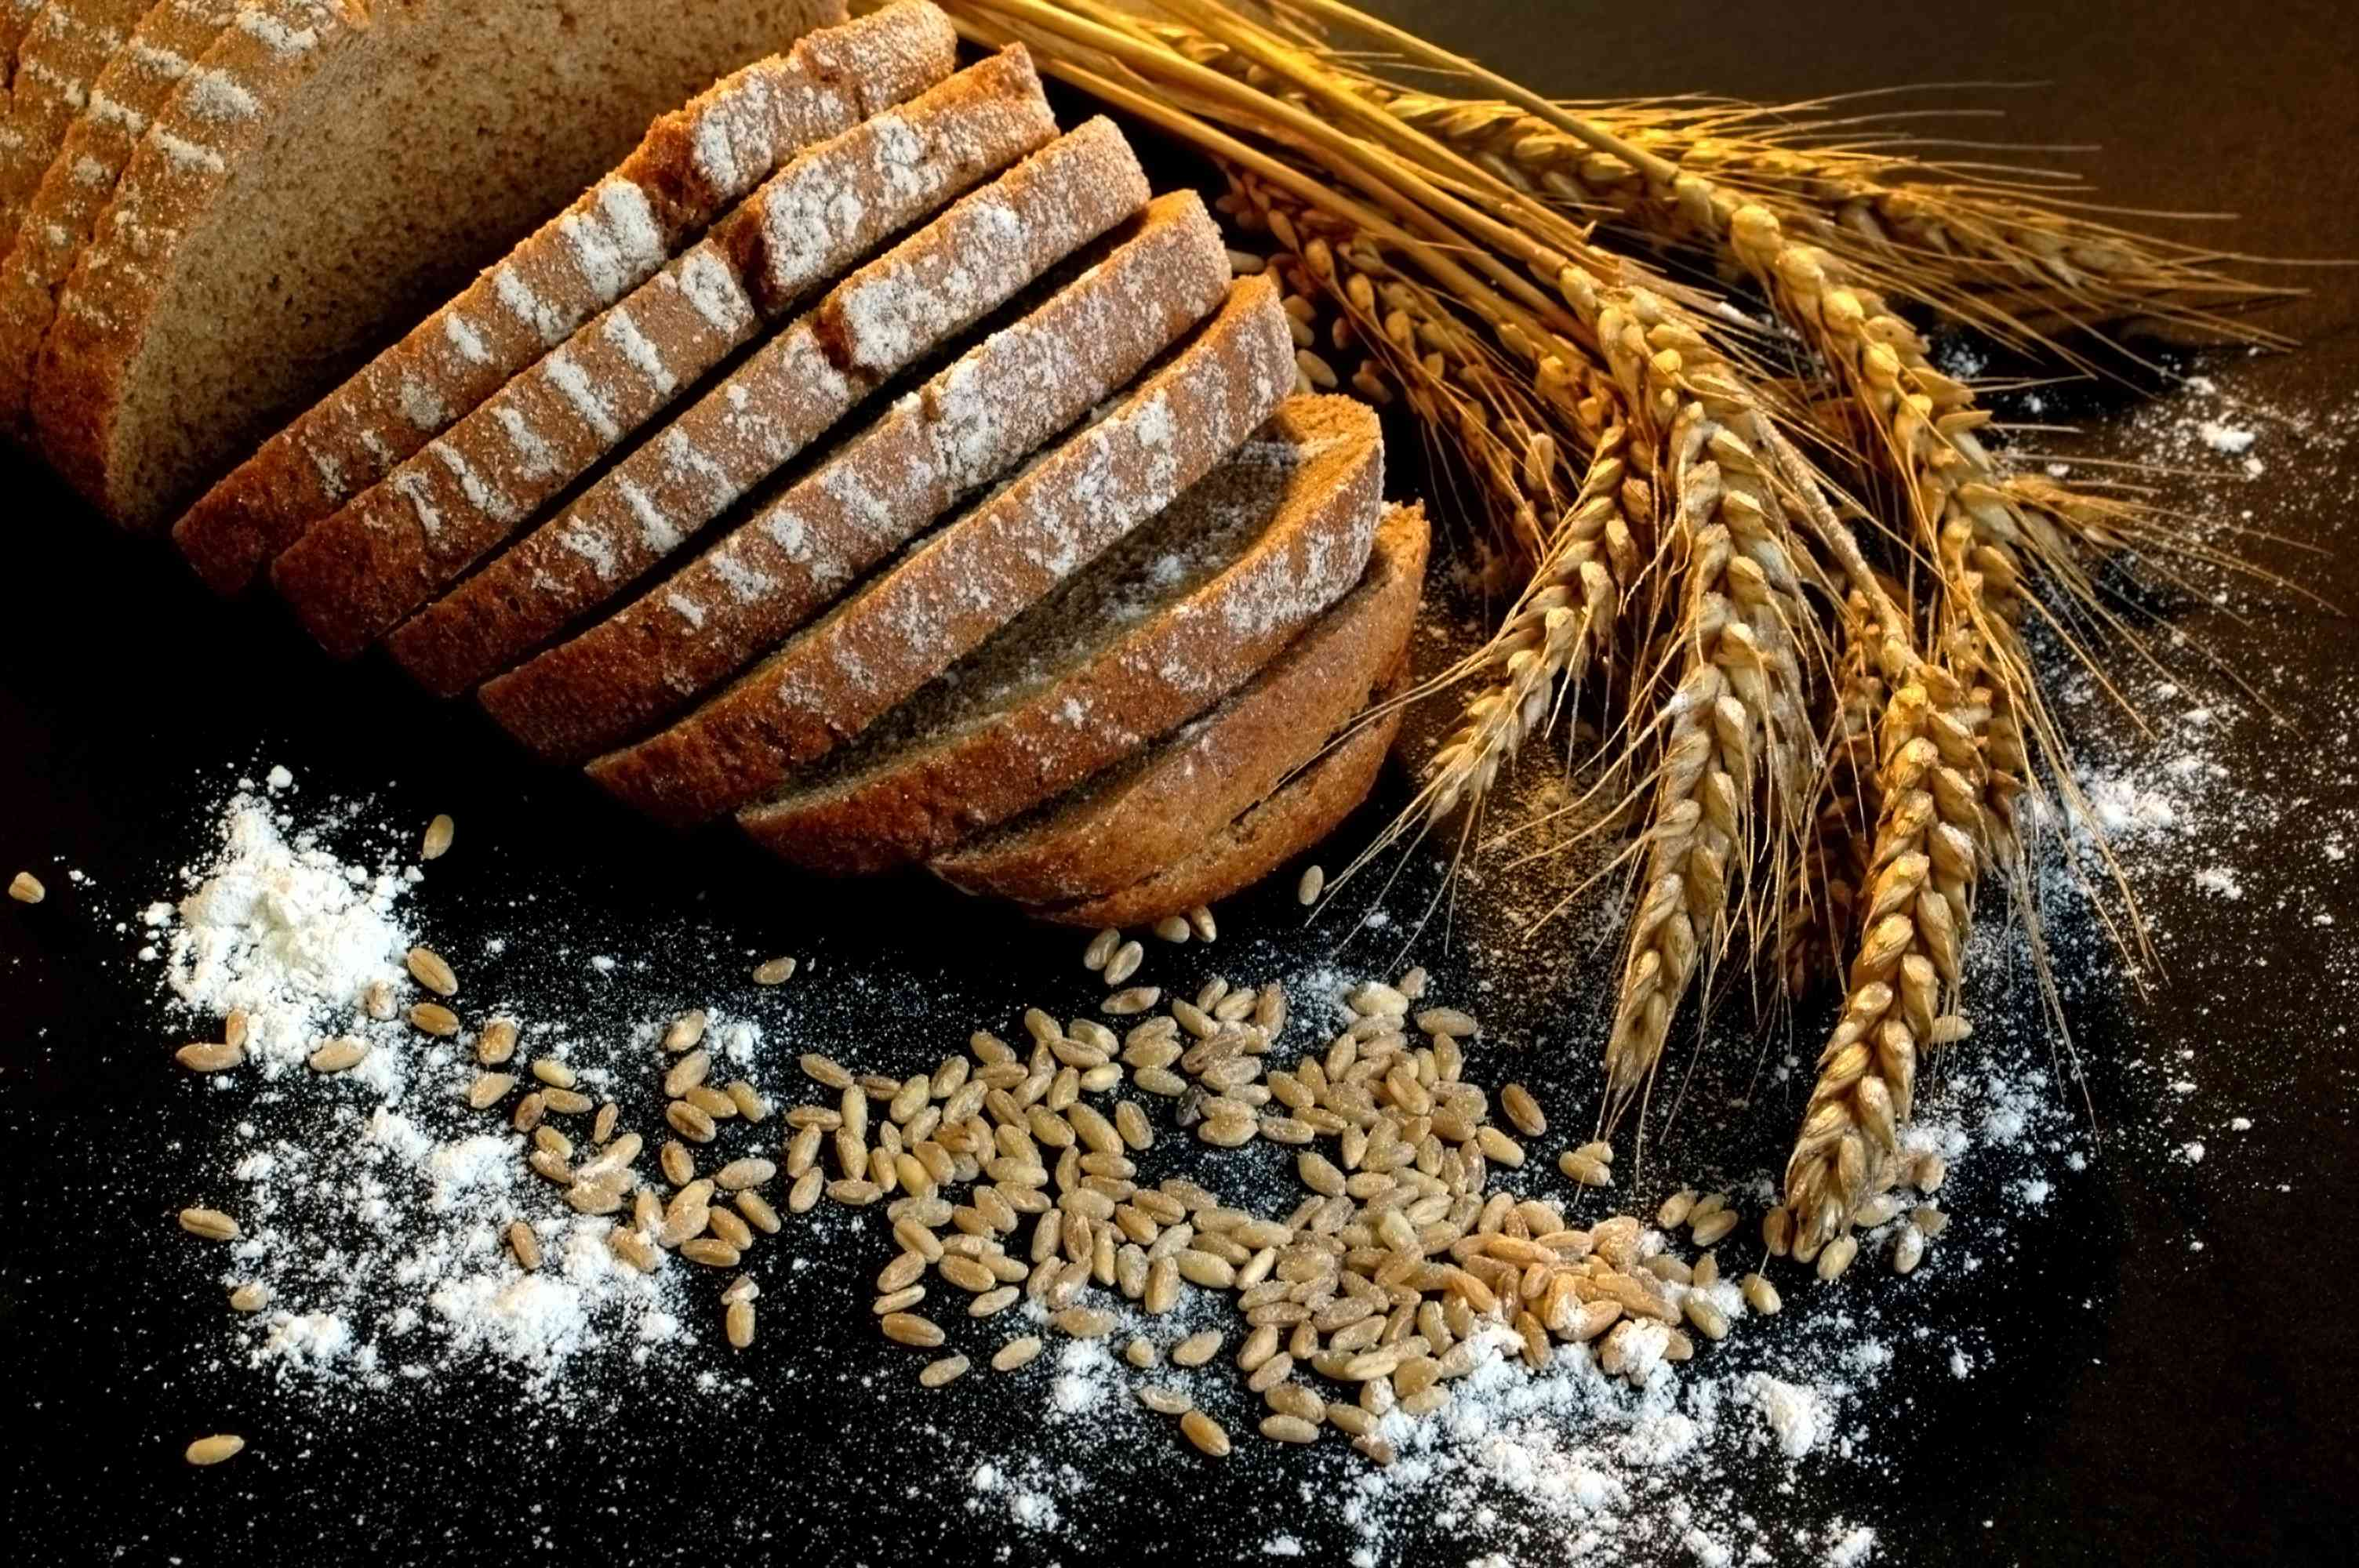 Close-Up Of Wheat And Brown Breads Over Black Background